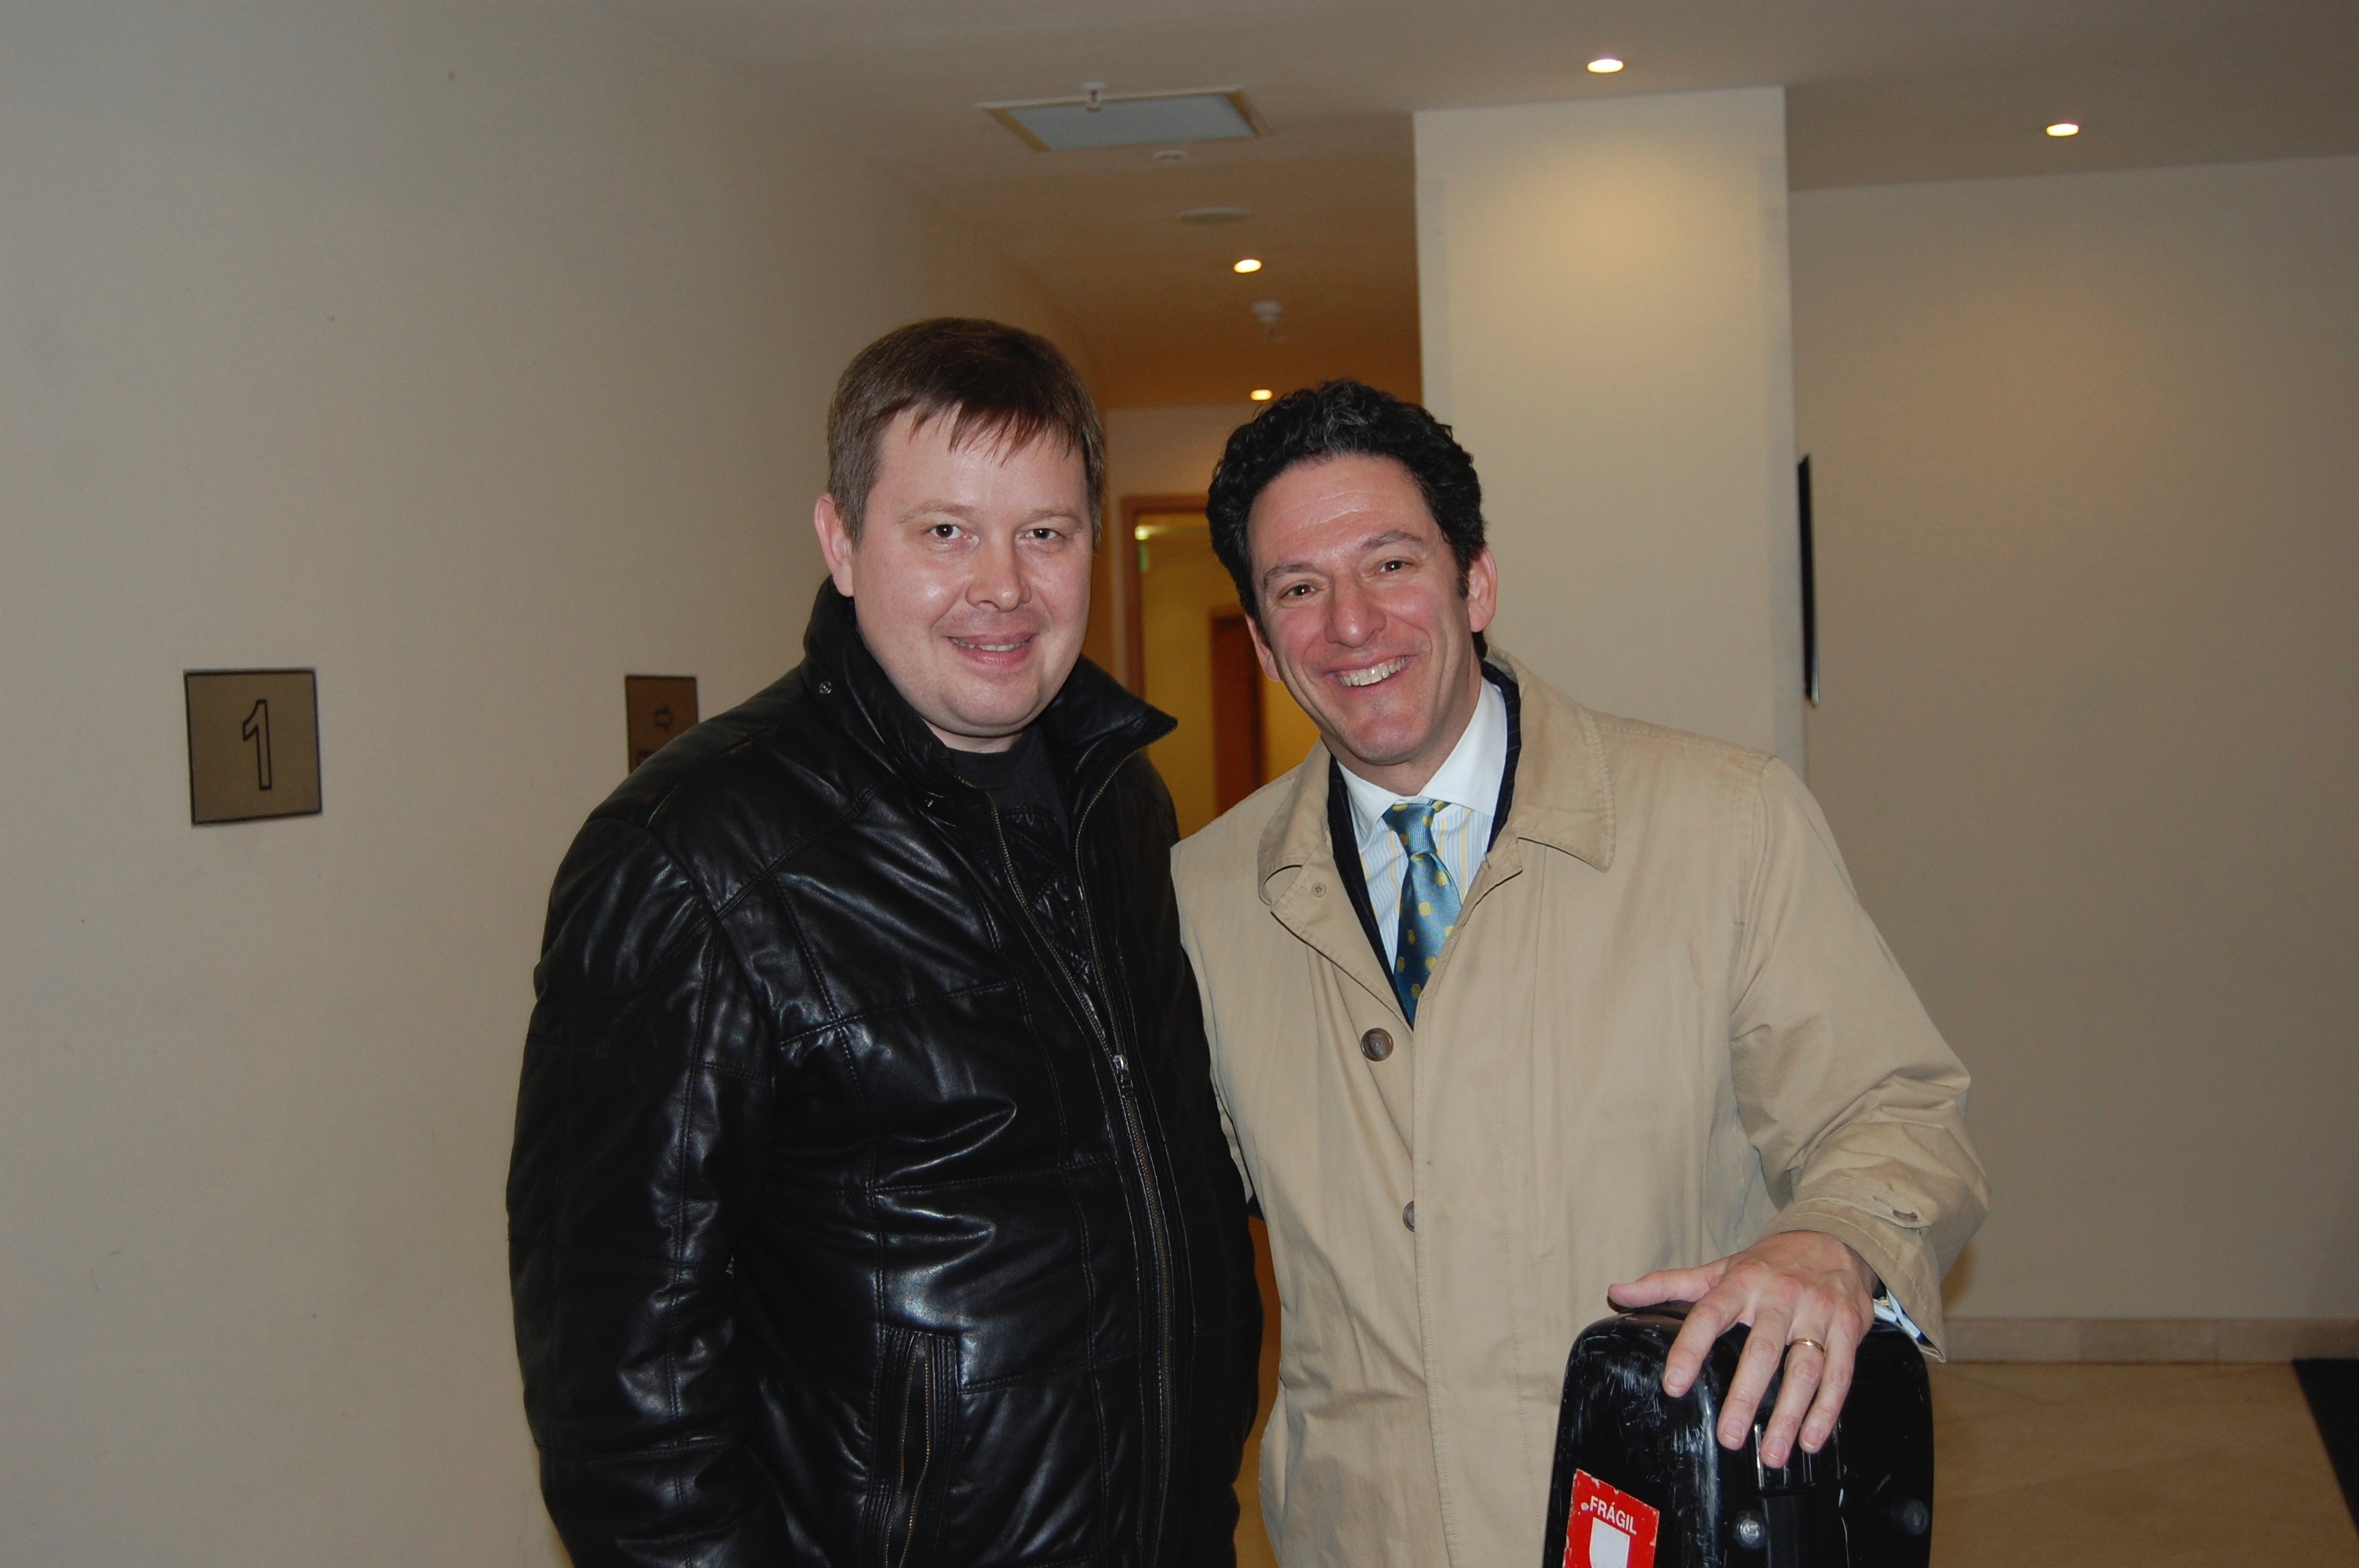 with John Pizzarelli